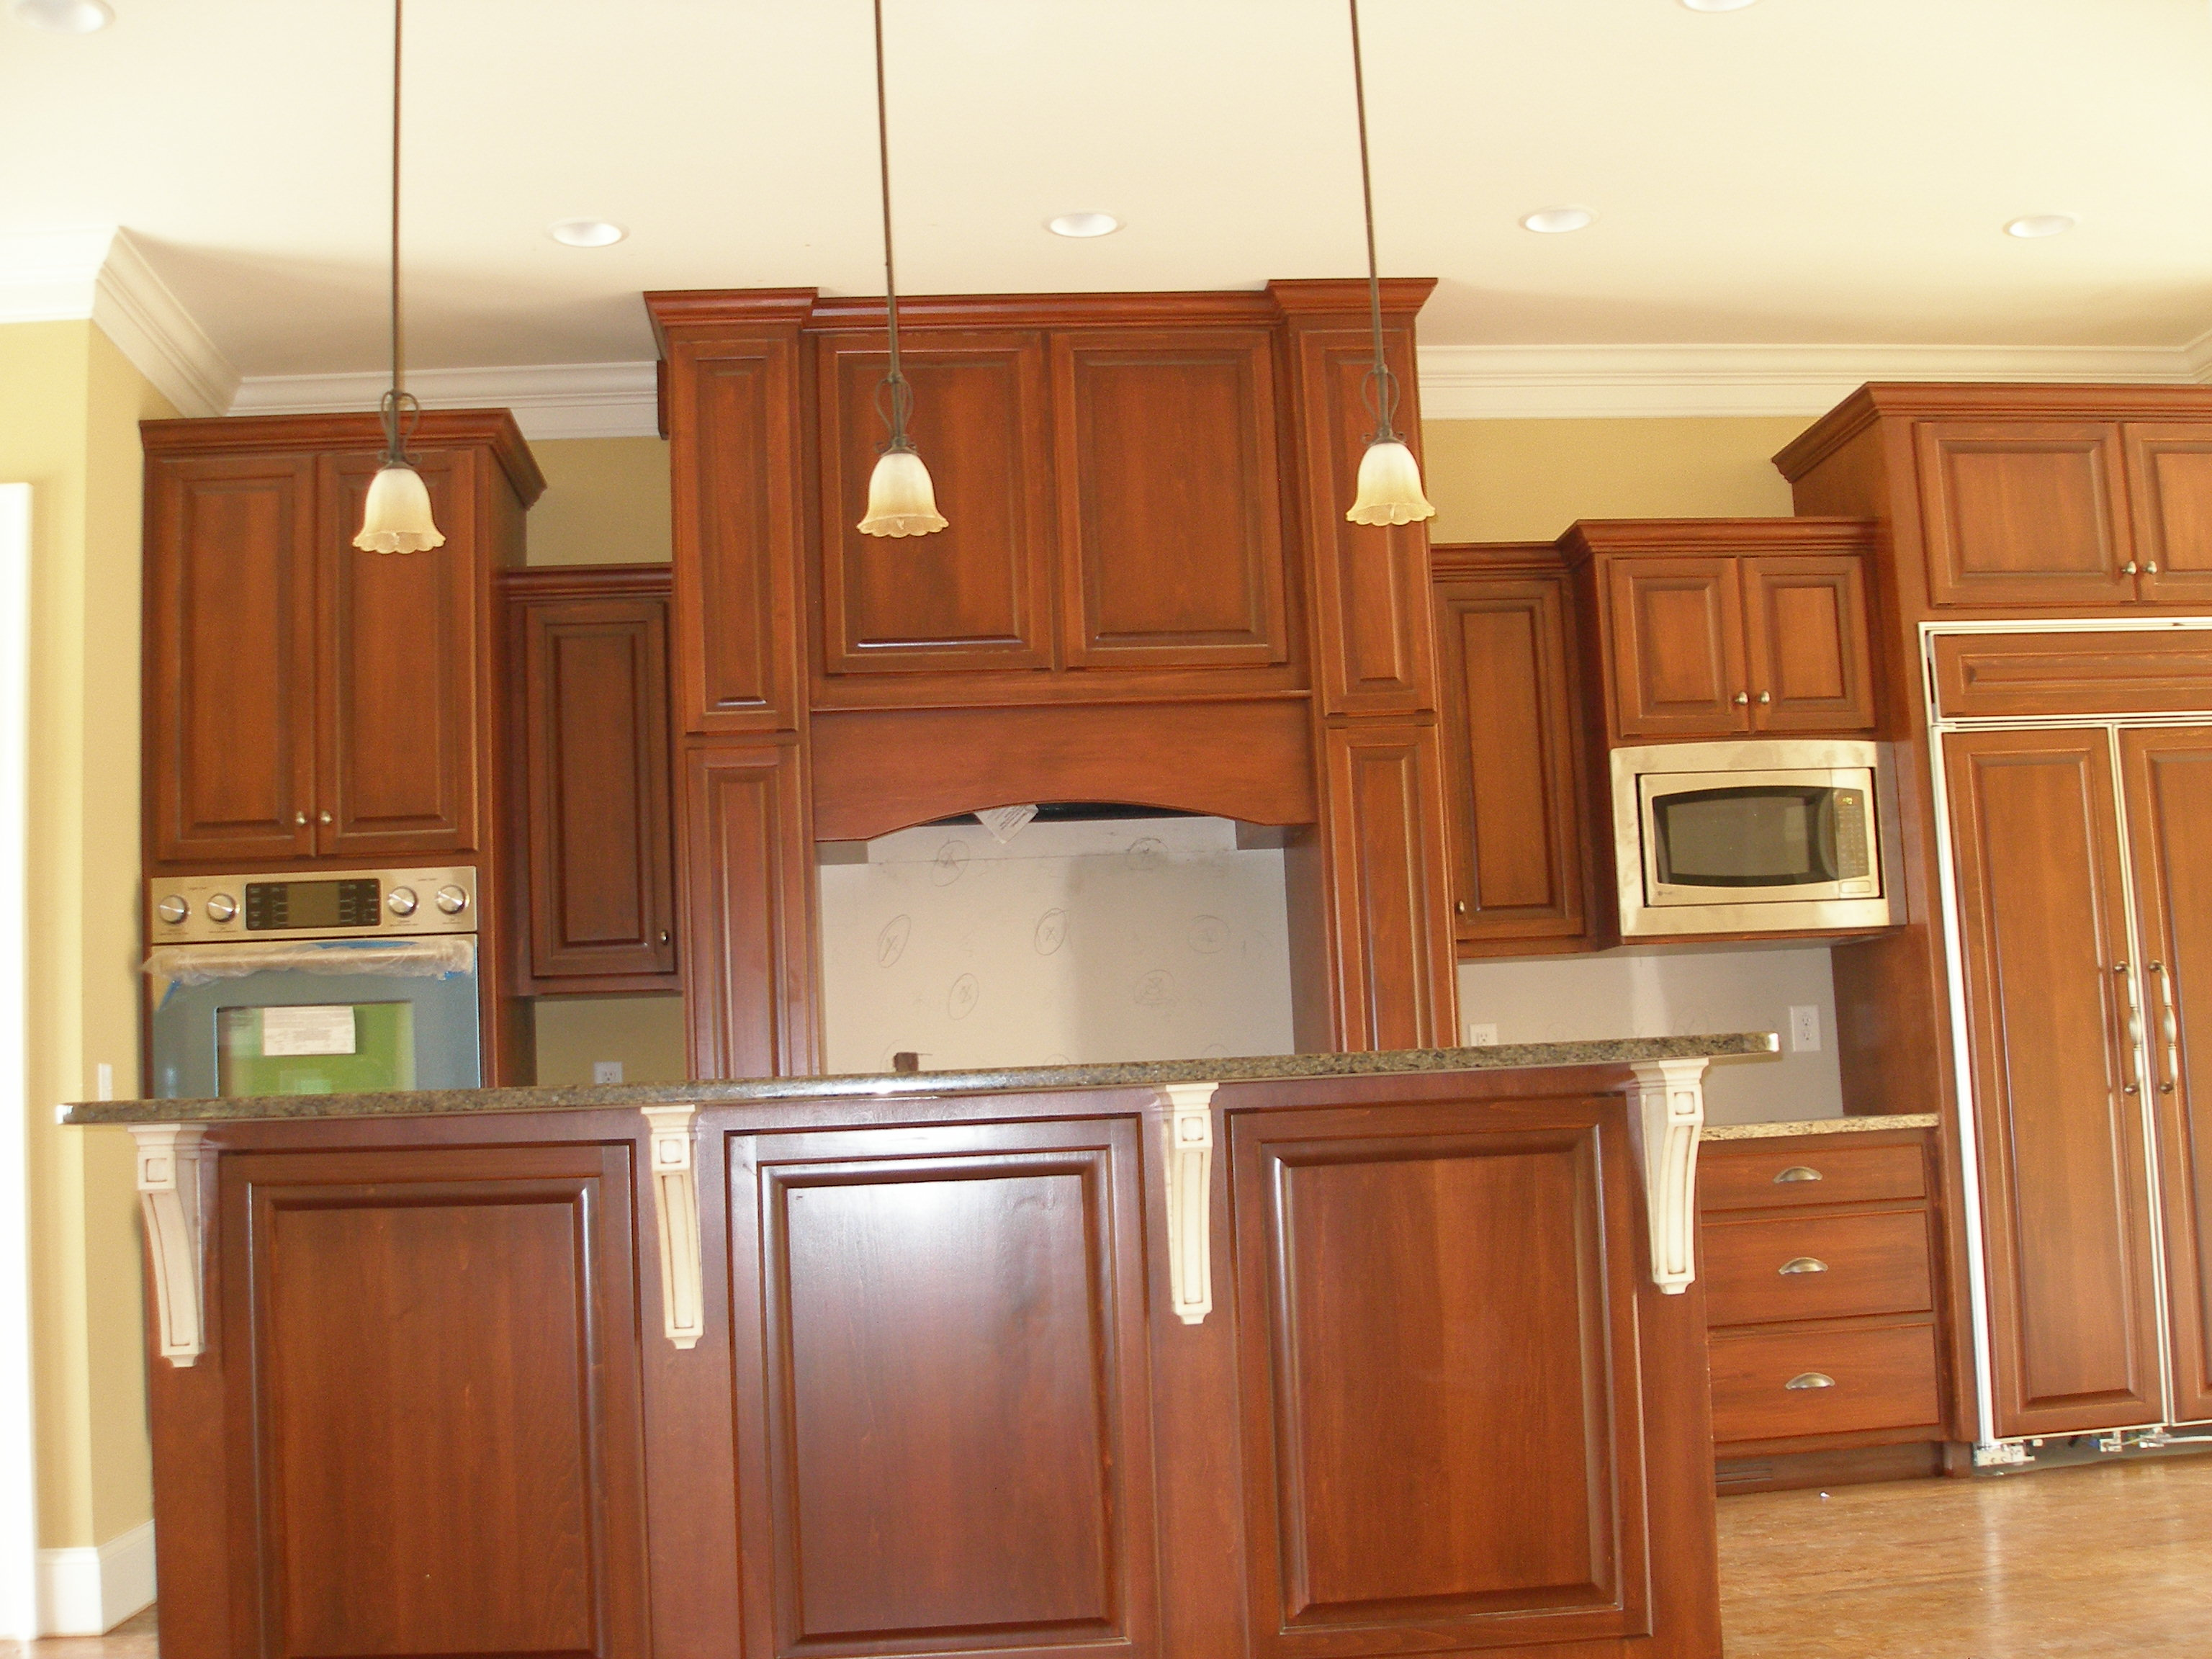 New Building Kitchen Cabinets Kitchen Cabinet Reviews Woodworking